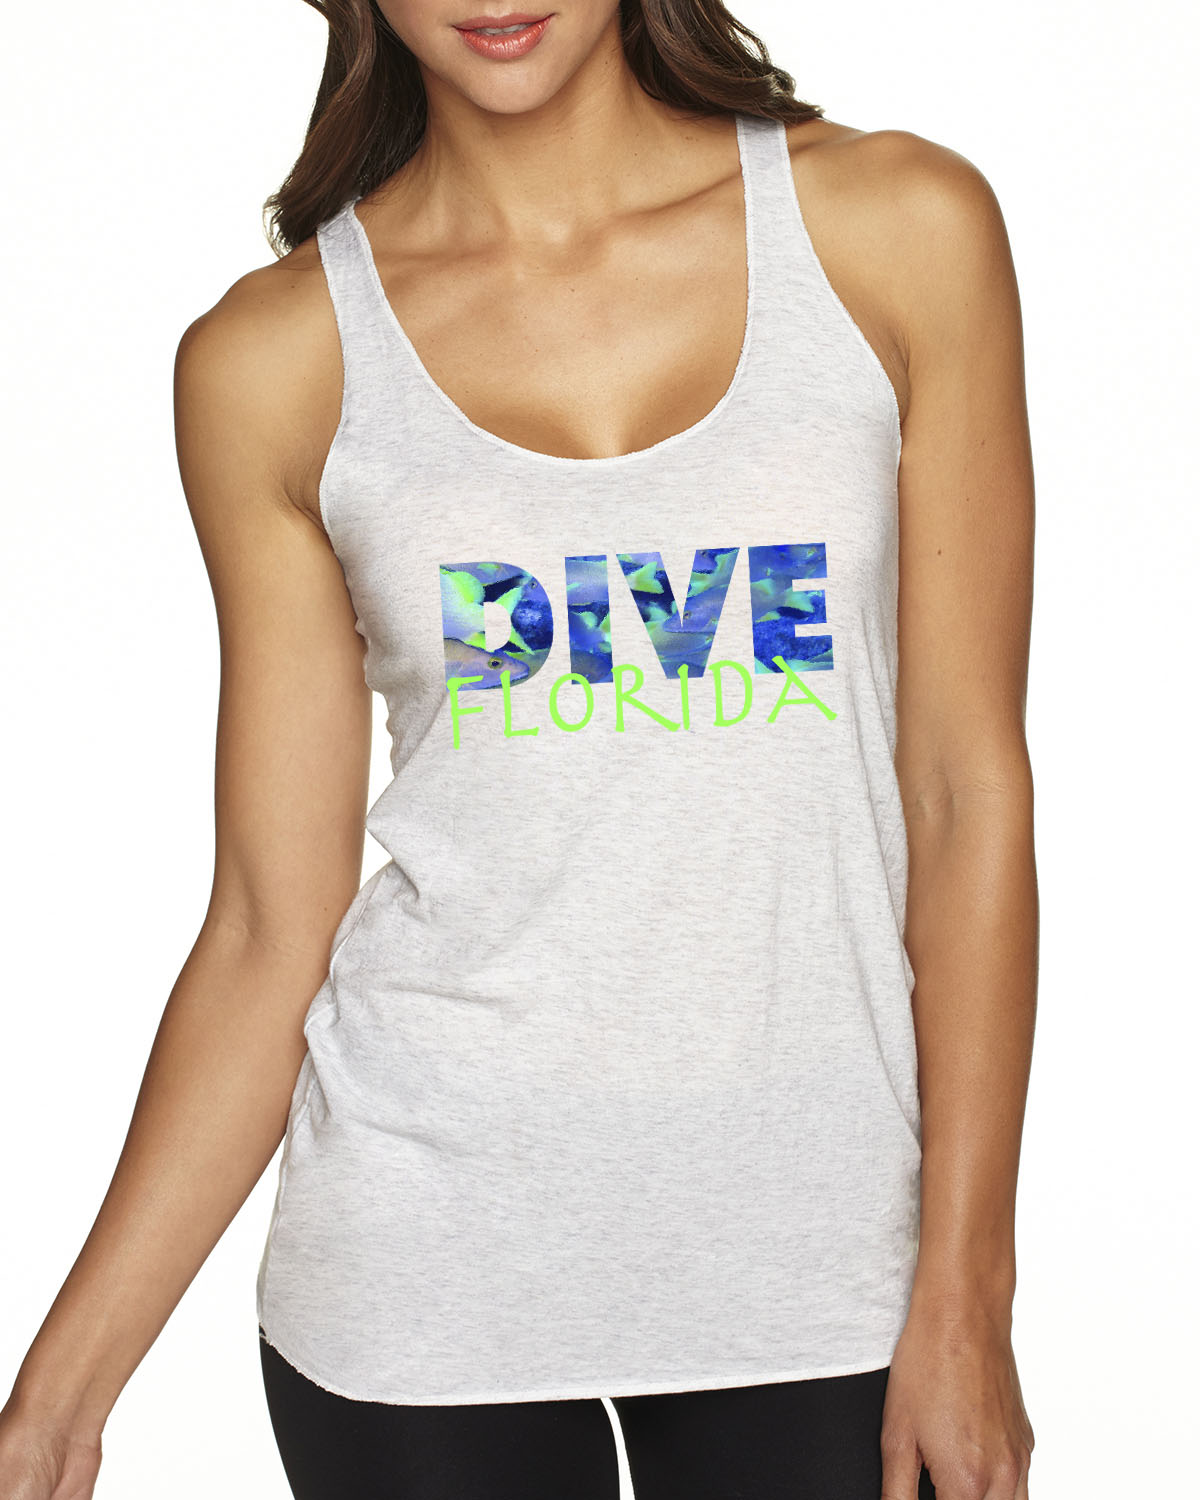 Racer-Back DIVE Florida Tank Top (Heather White)